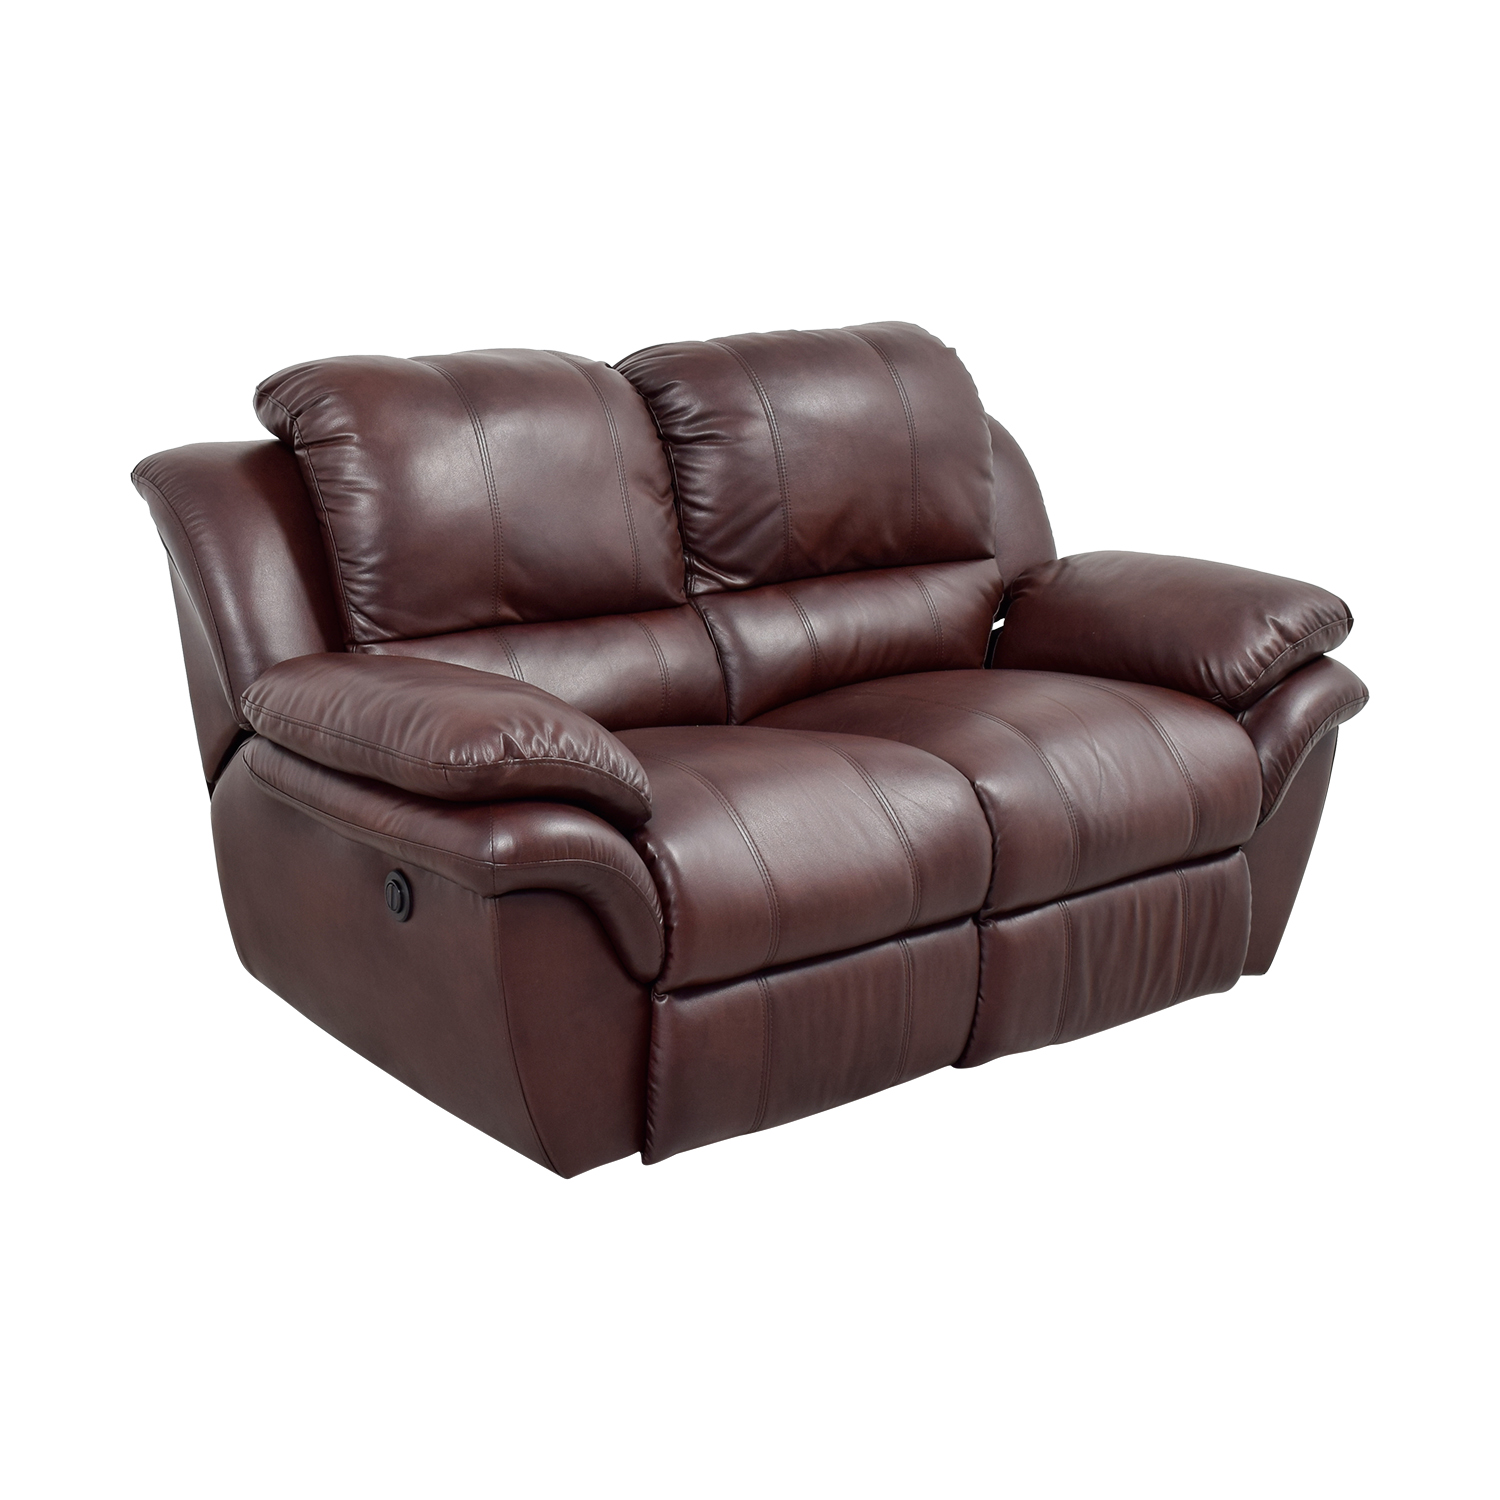 78 Off Bob S Furniture Bob S Furniture Brown Leather Recliner Sofas